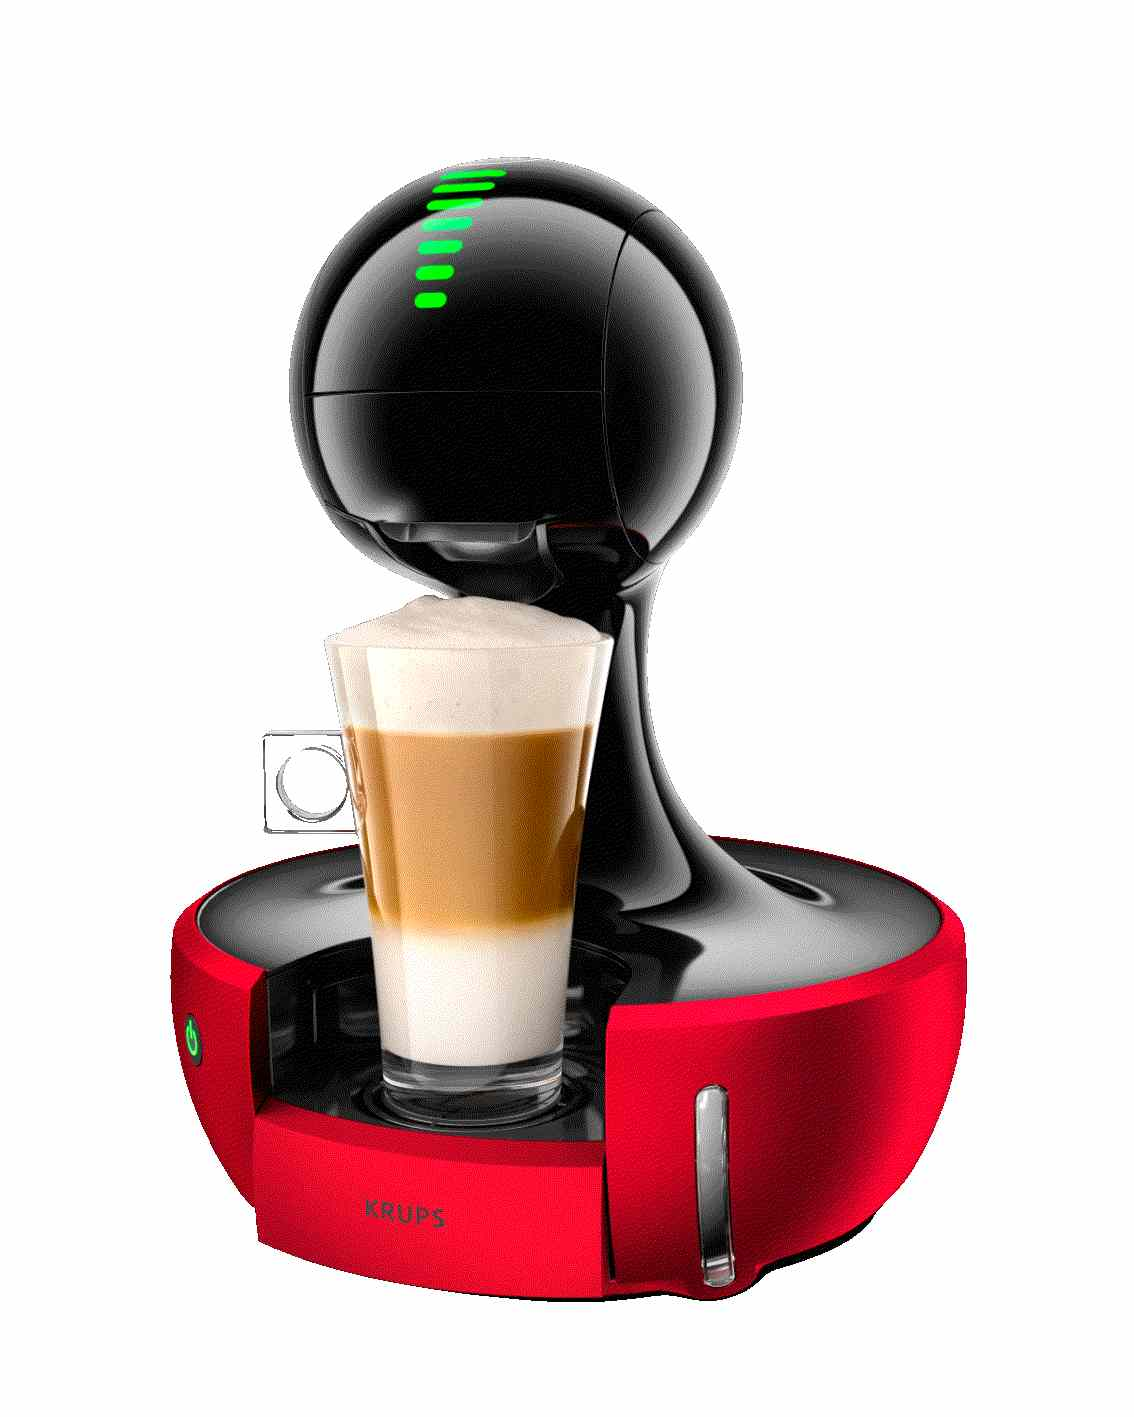 machines caf nescaf dolce gusto. Black Bedroom Furniture Sets. Home Design Ideas